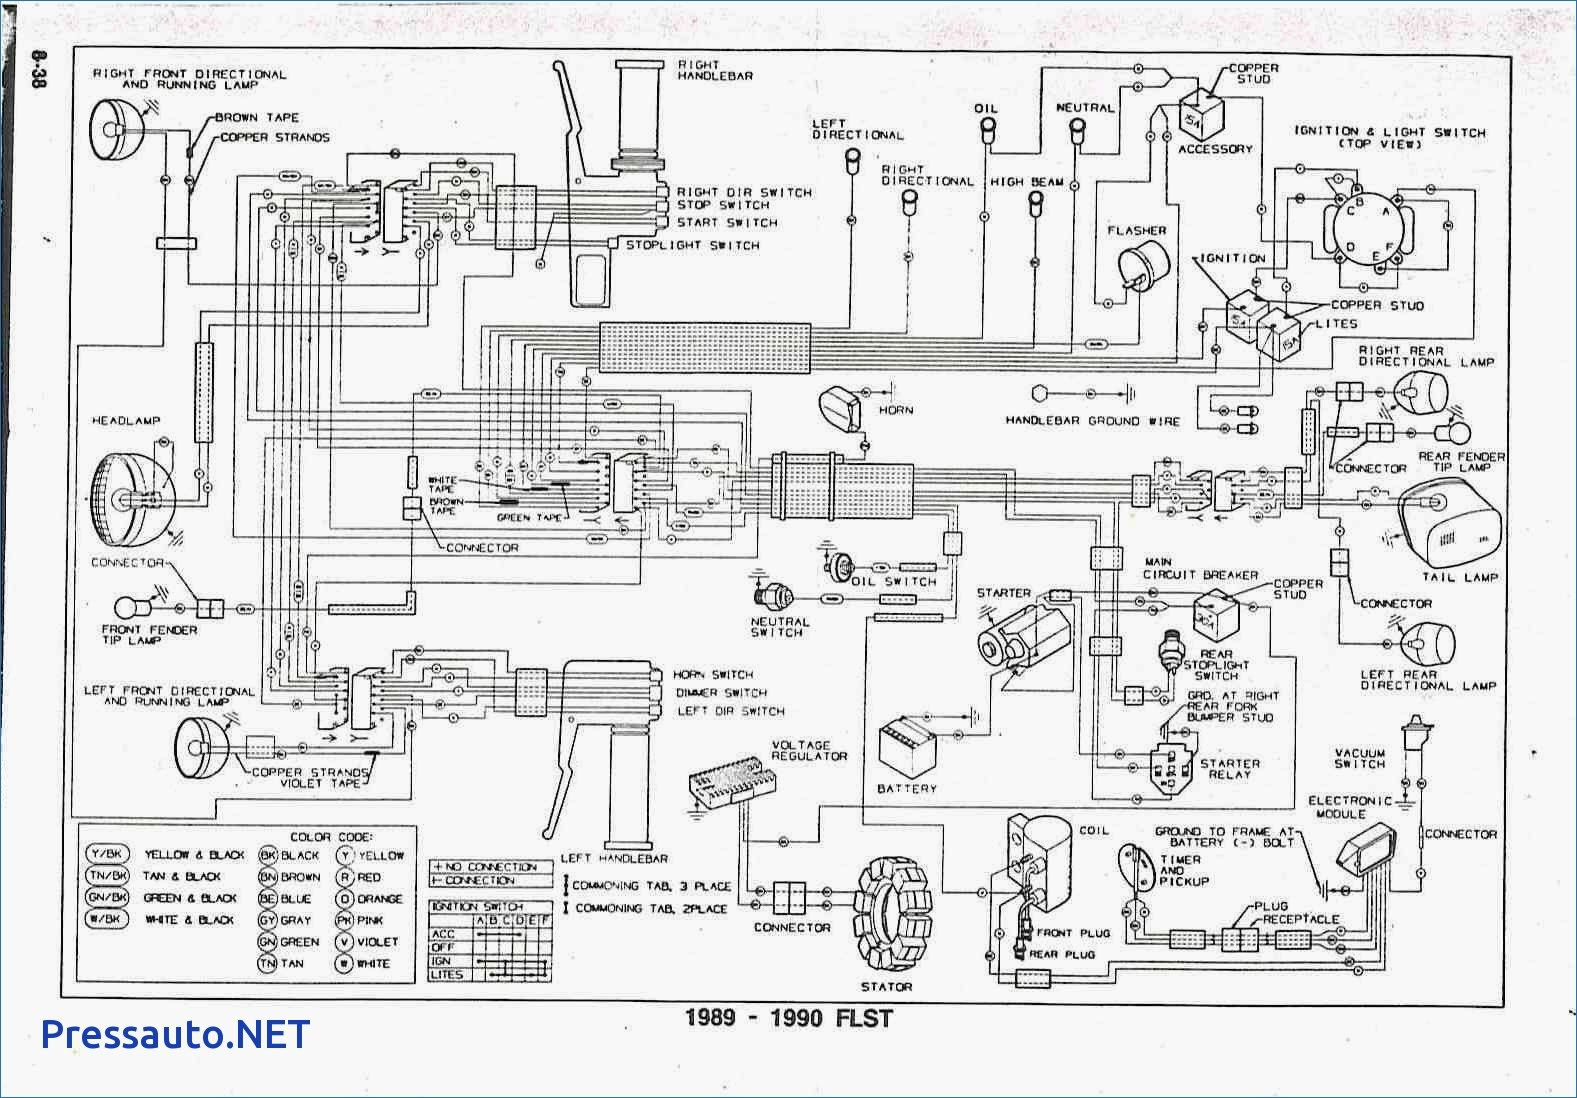 Wiring Diagram Harley Davidson Download Free Printable Of For